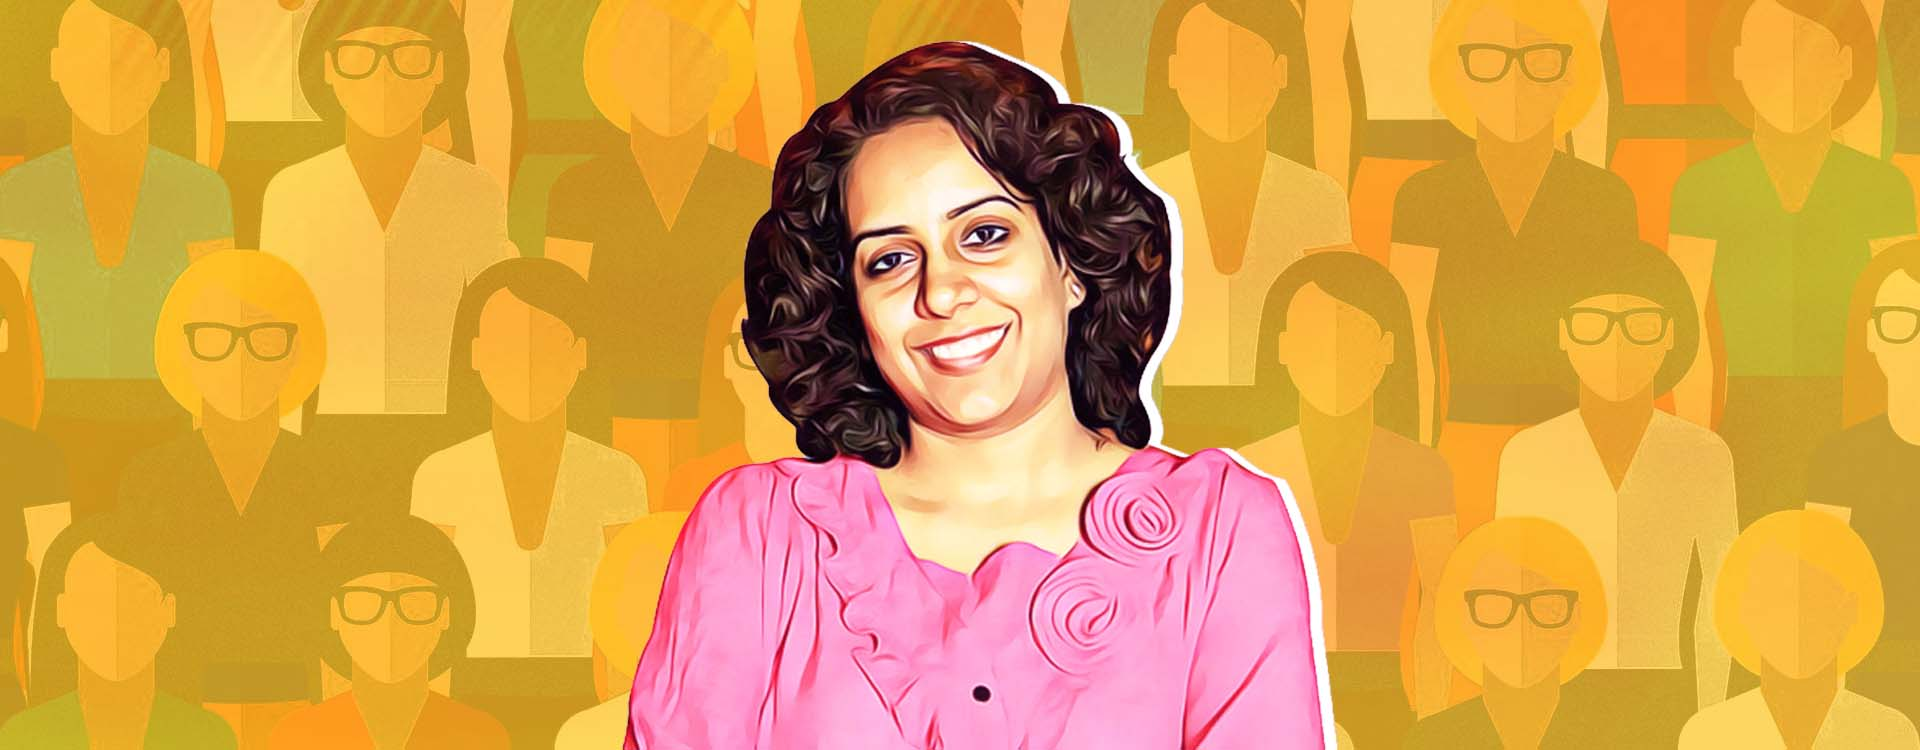 Ankita Ghaba Leading Thought and Influencing the Influencers